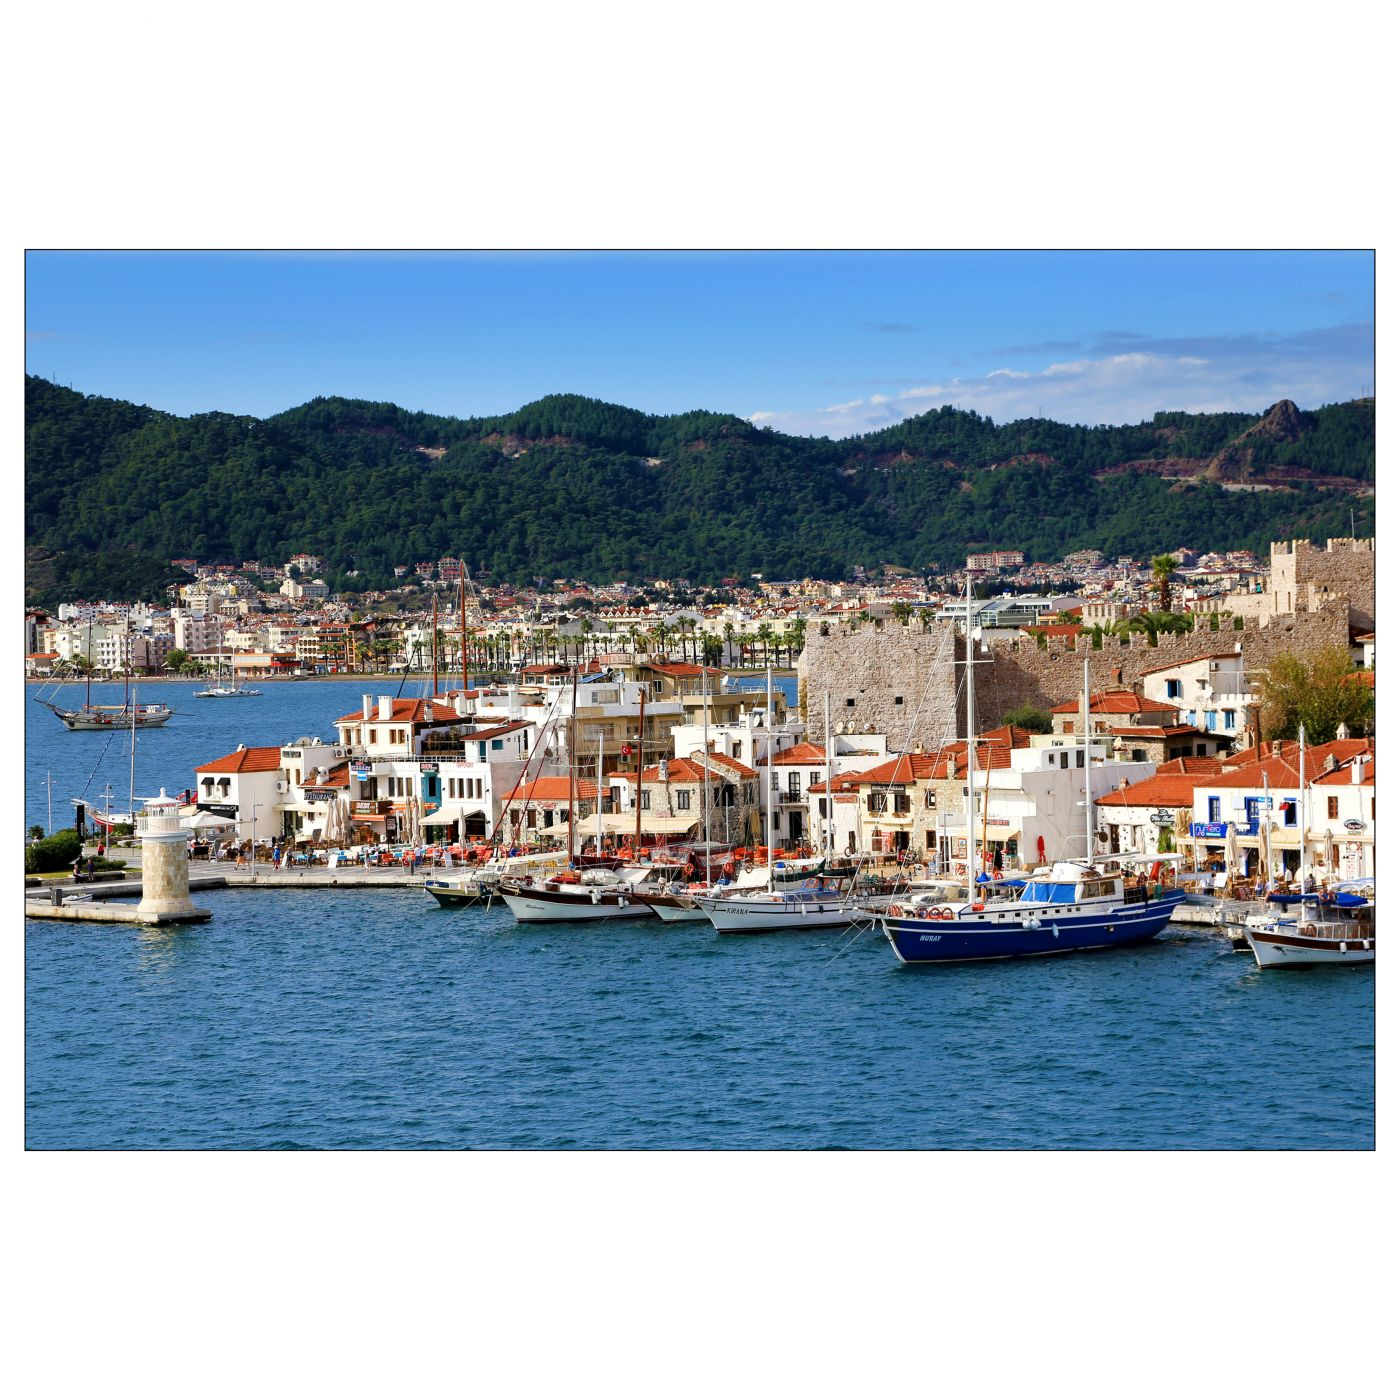 Marmaris Old Port, Turkey